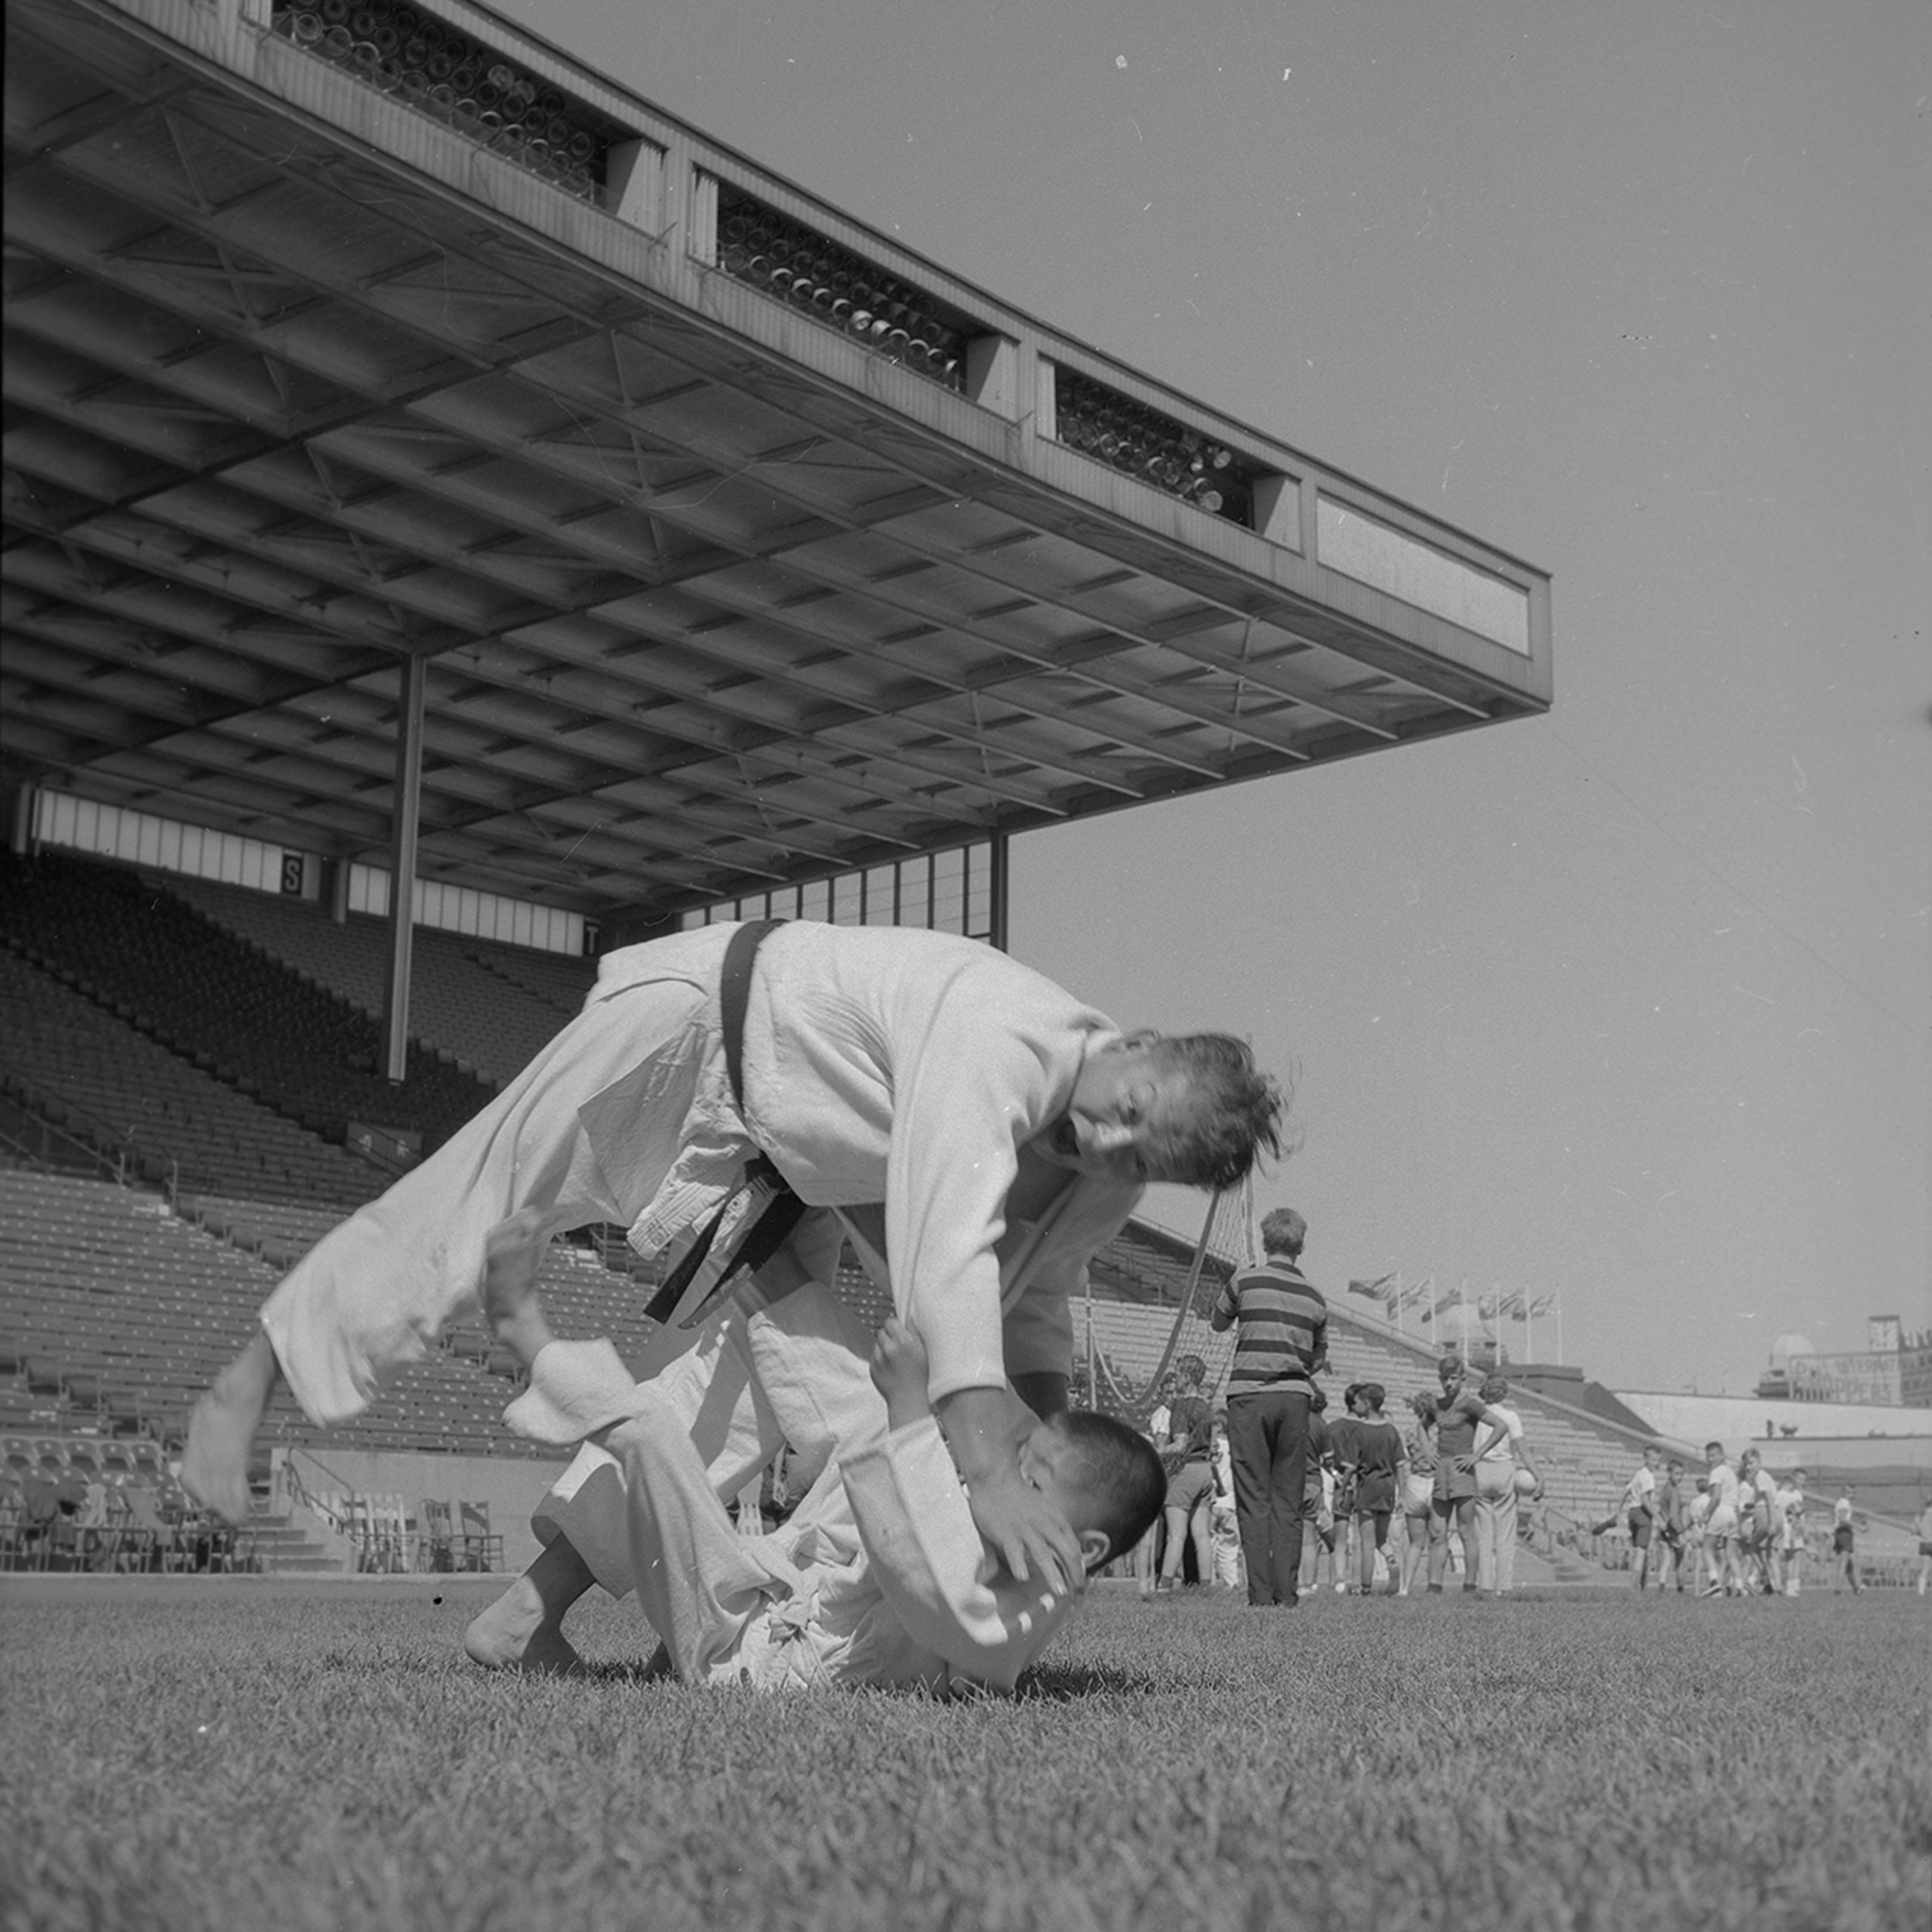 Martial Arts Demonstration at Grandstand, 1962. Canadian National Exhibition Archives, MG5-F771-I17. Courtesy of the CNEA